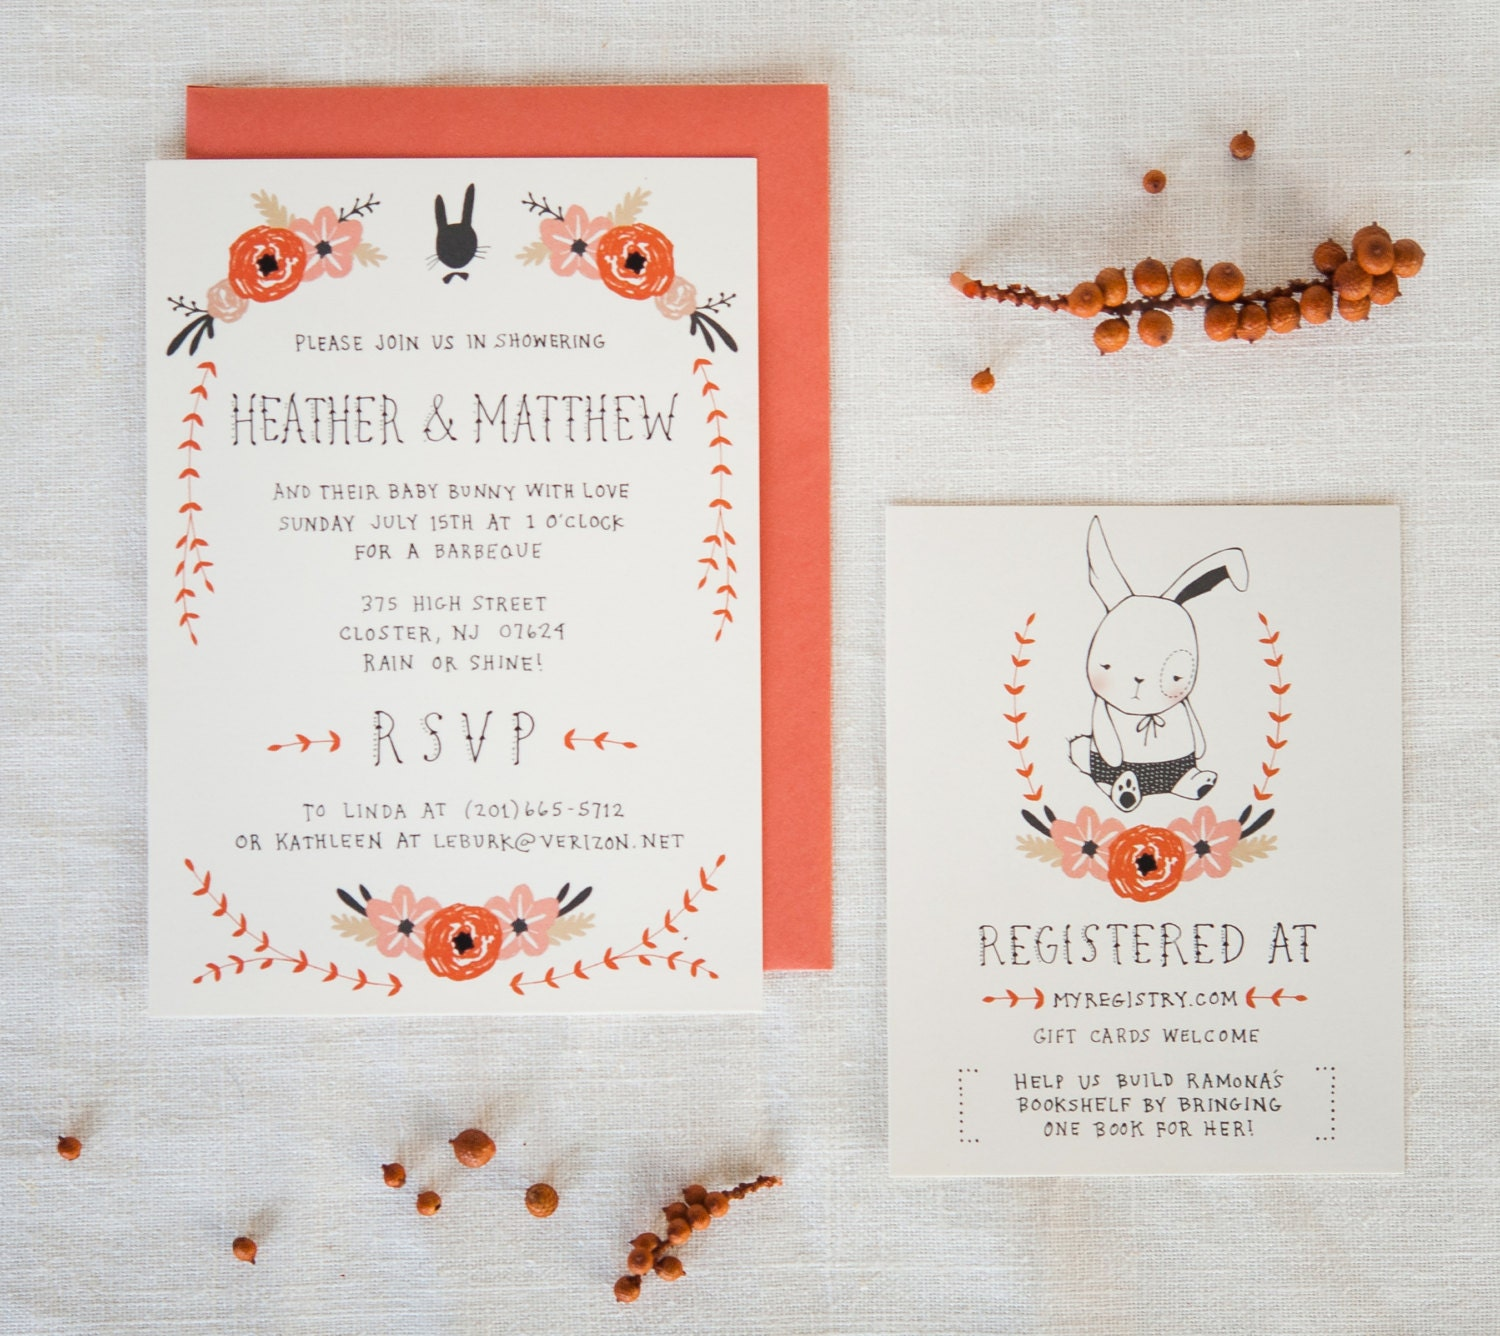 Baby Shower Invitation and Registry Card Bunny & Blooms